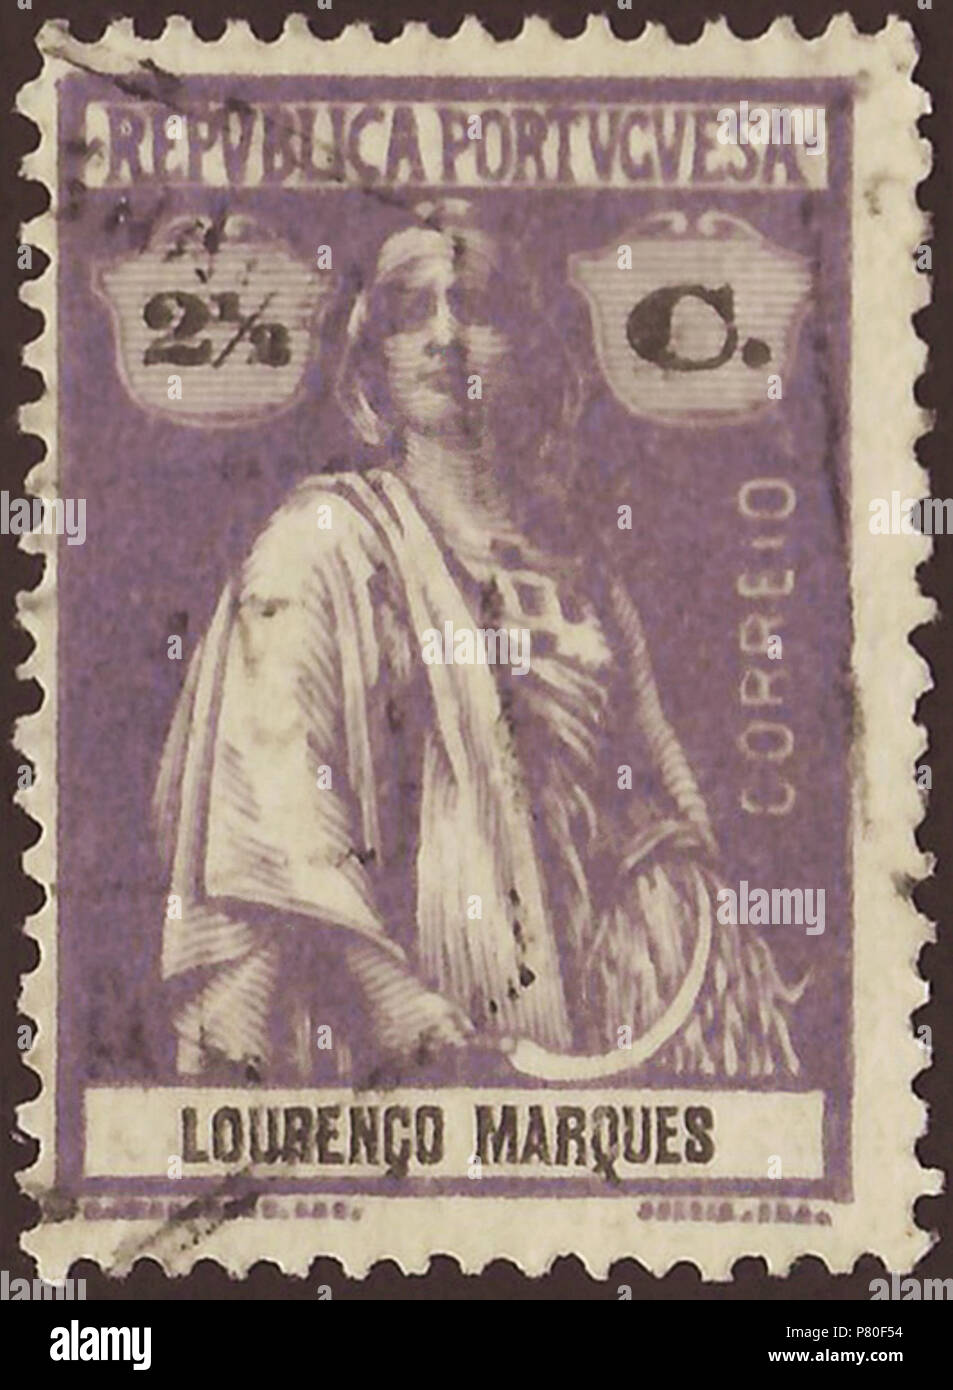 Stamp of Lourenço Marques (Portuguese Mozambique); 1914; definitive stamp of the issue 'Ceres - colonial issues'; stamp postmarked Stamp: Michel: No. 122; Yvert et Tellier: No. 122 Color: greyish lilac / black on 'reaper-coated' paper (Note: In the anglophone literature is sometime used the term 'reaper-coated' as description for the paper of these stamps without to amplify this. Probably, it's about an early process of paper coating by using of polymeric carbohydrate on basis of starch obtained from staple-food plants ('reaper plants').) Watermark: none Nominal value: 2½ C. (Centavos) Postage - Stock Image